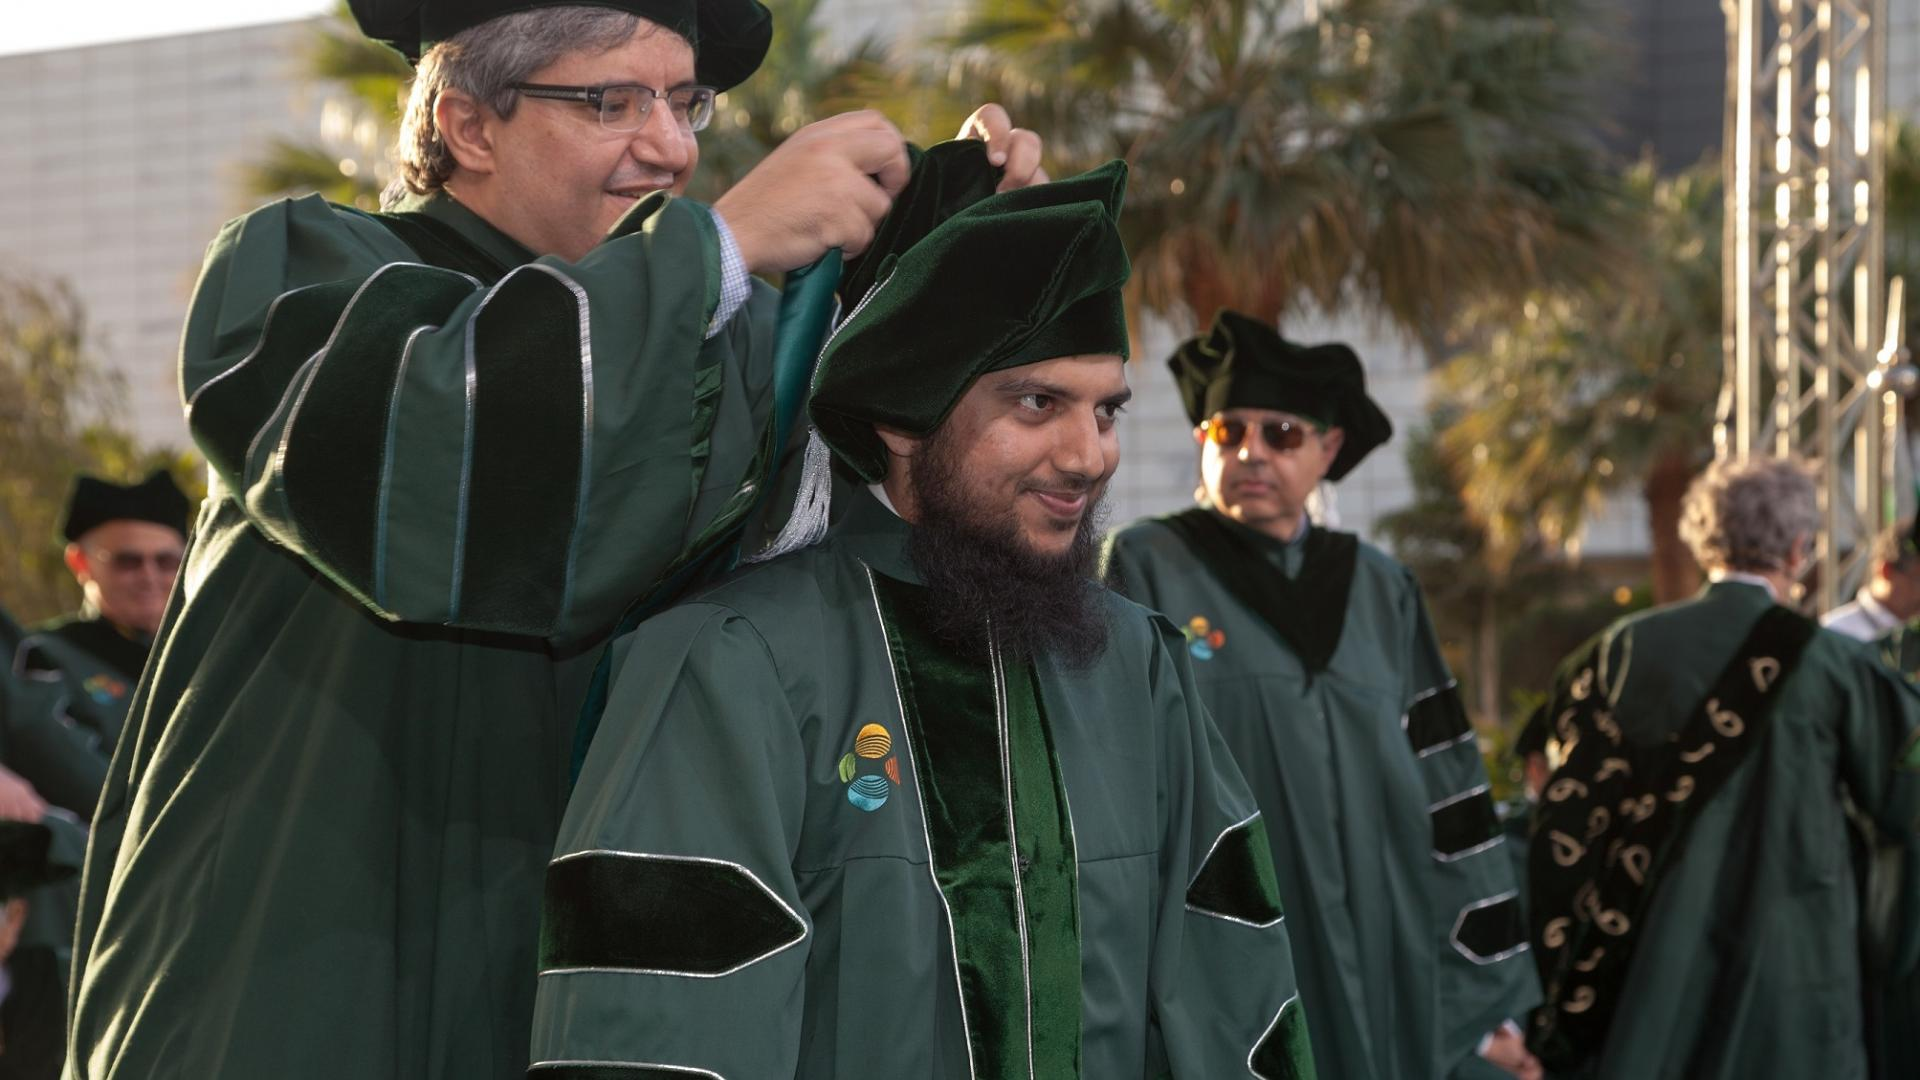 Professor Alouini awarding the Doctoral Hood to Fahd Khan during his graduation